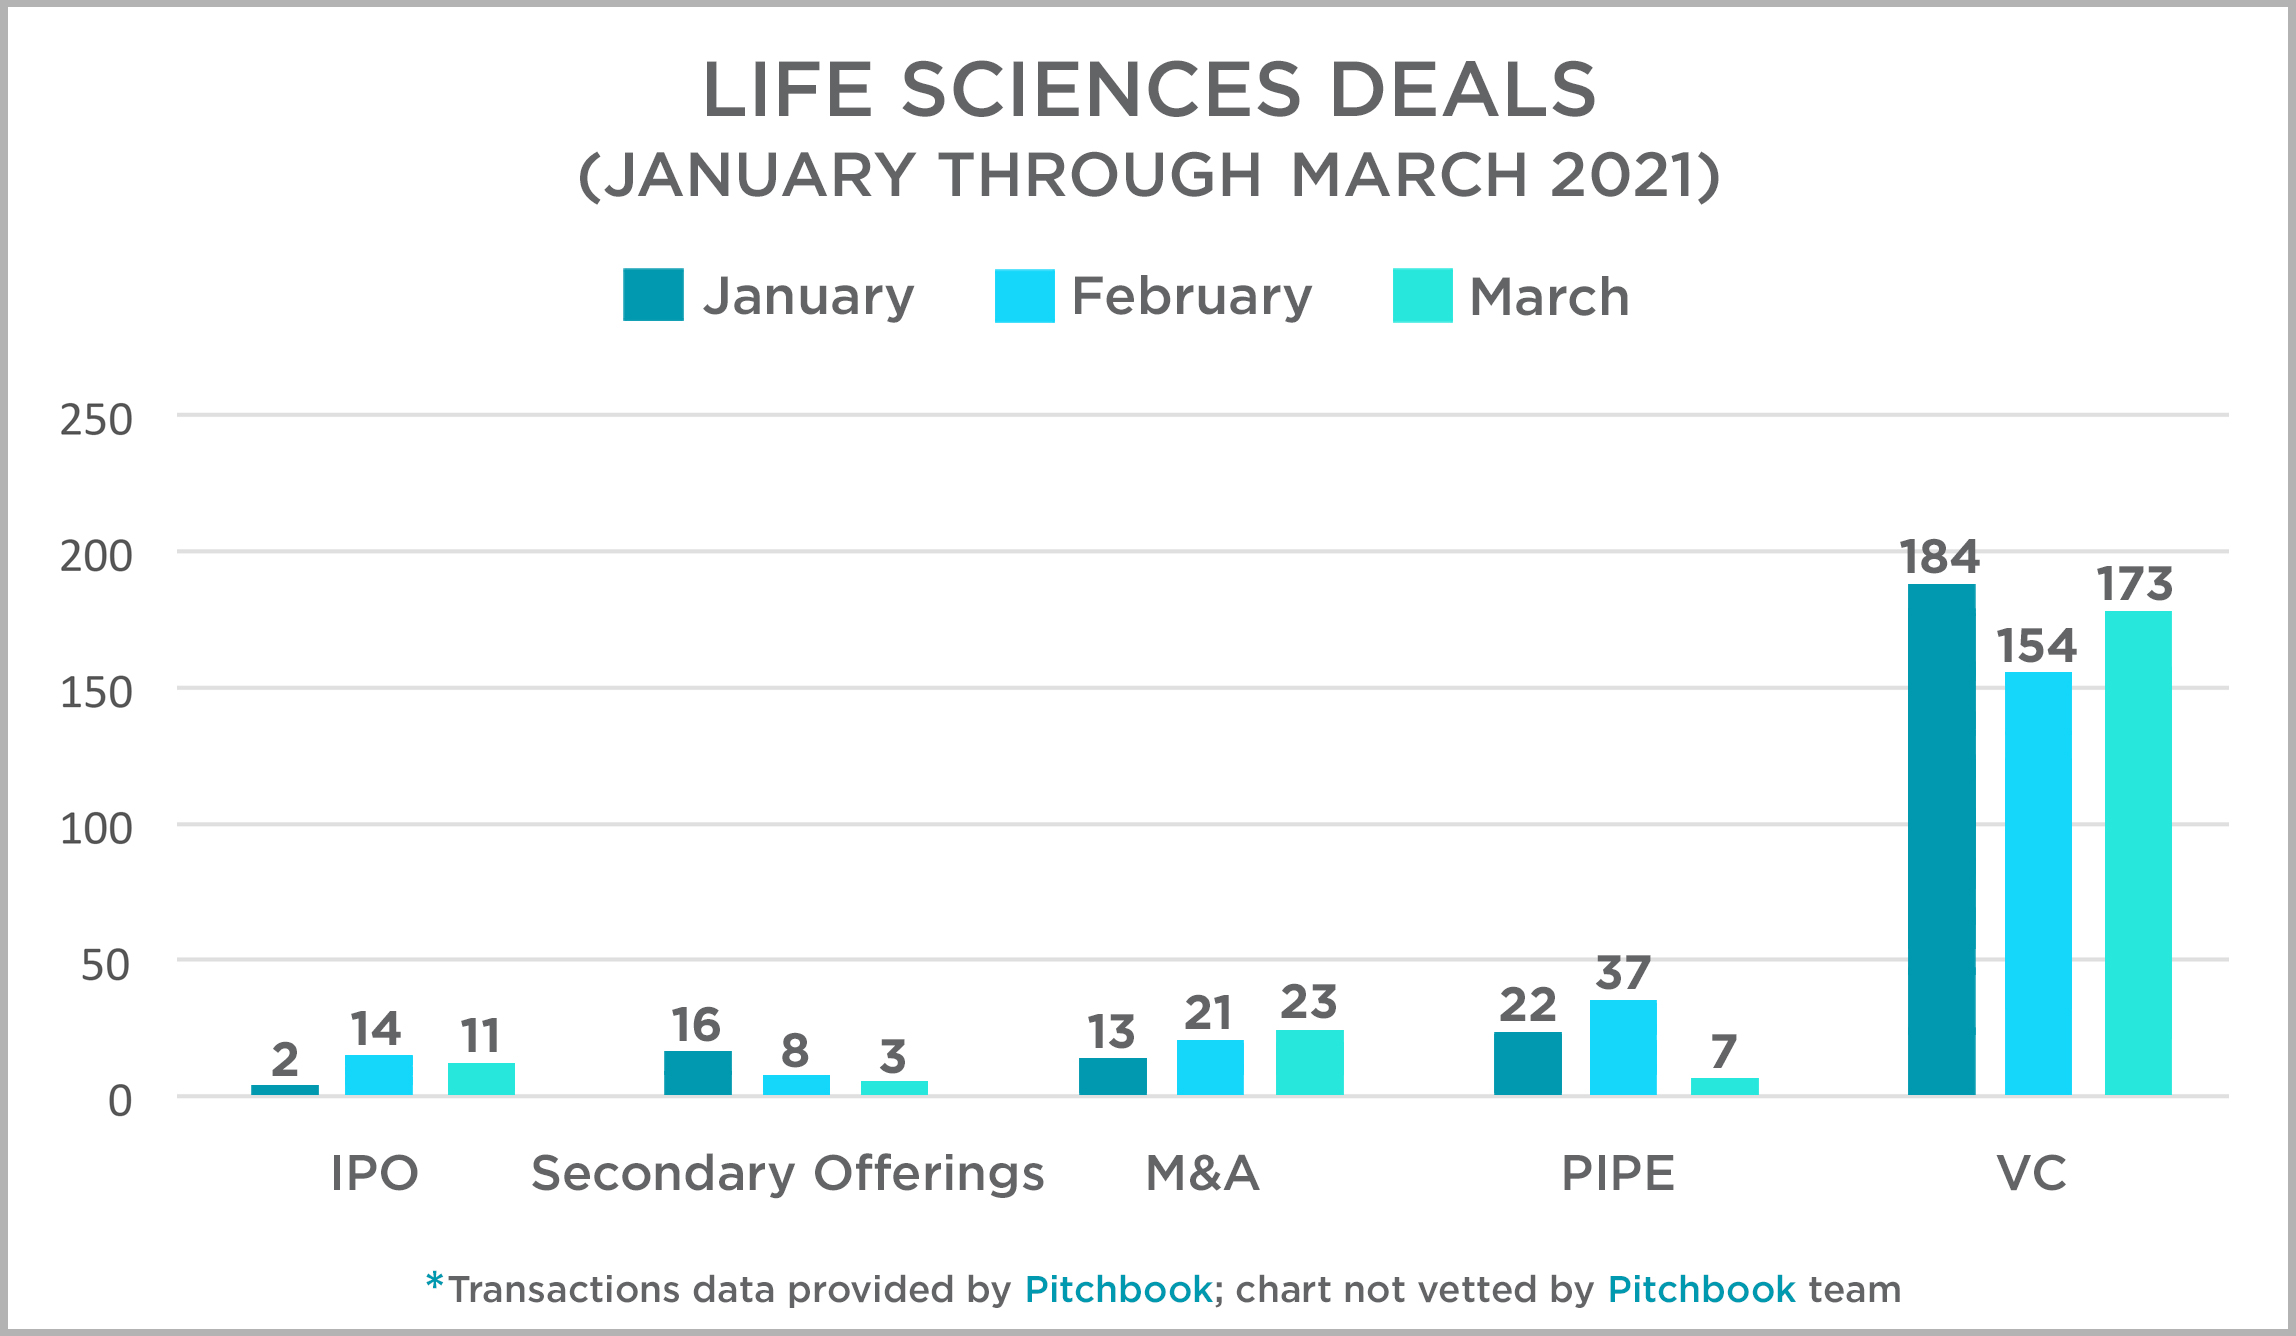 Life Science Deals January thru March 2021